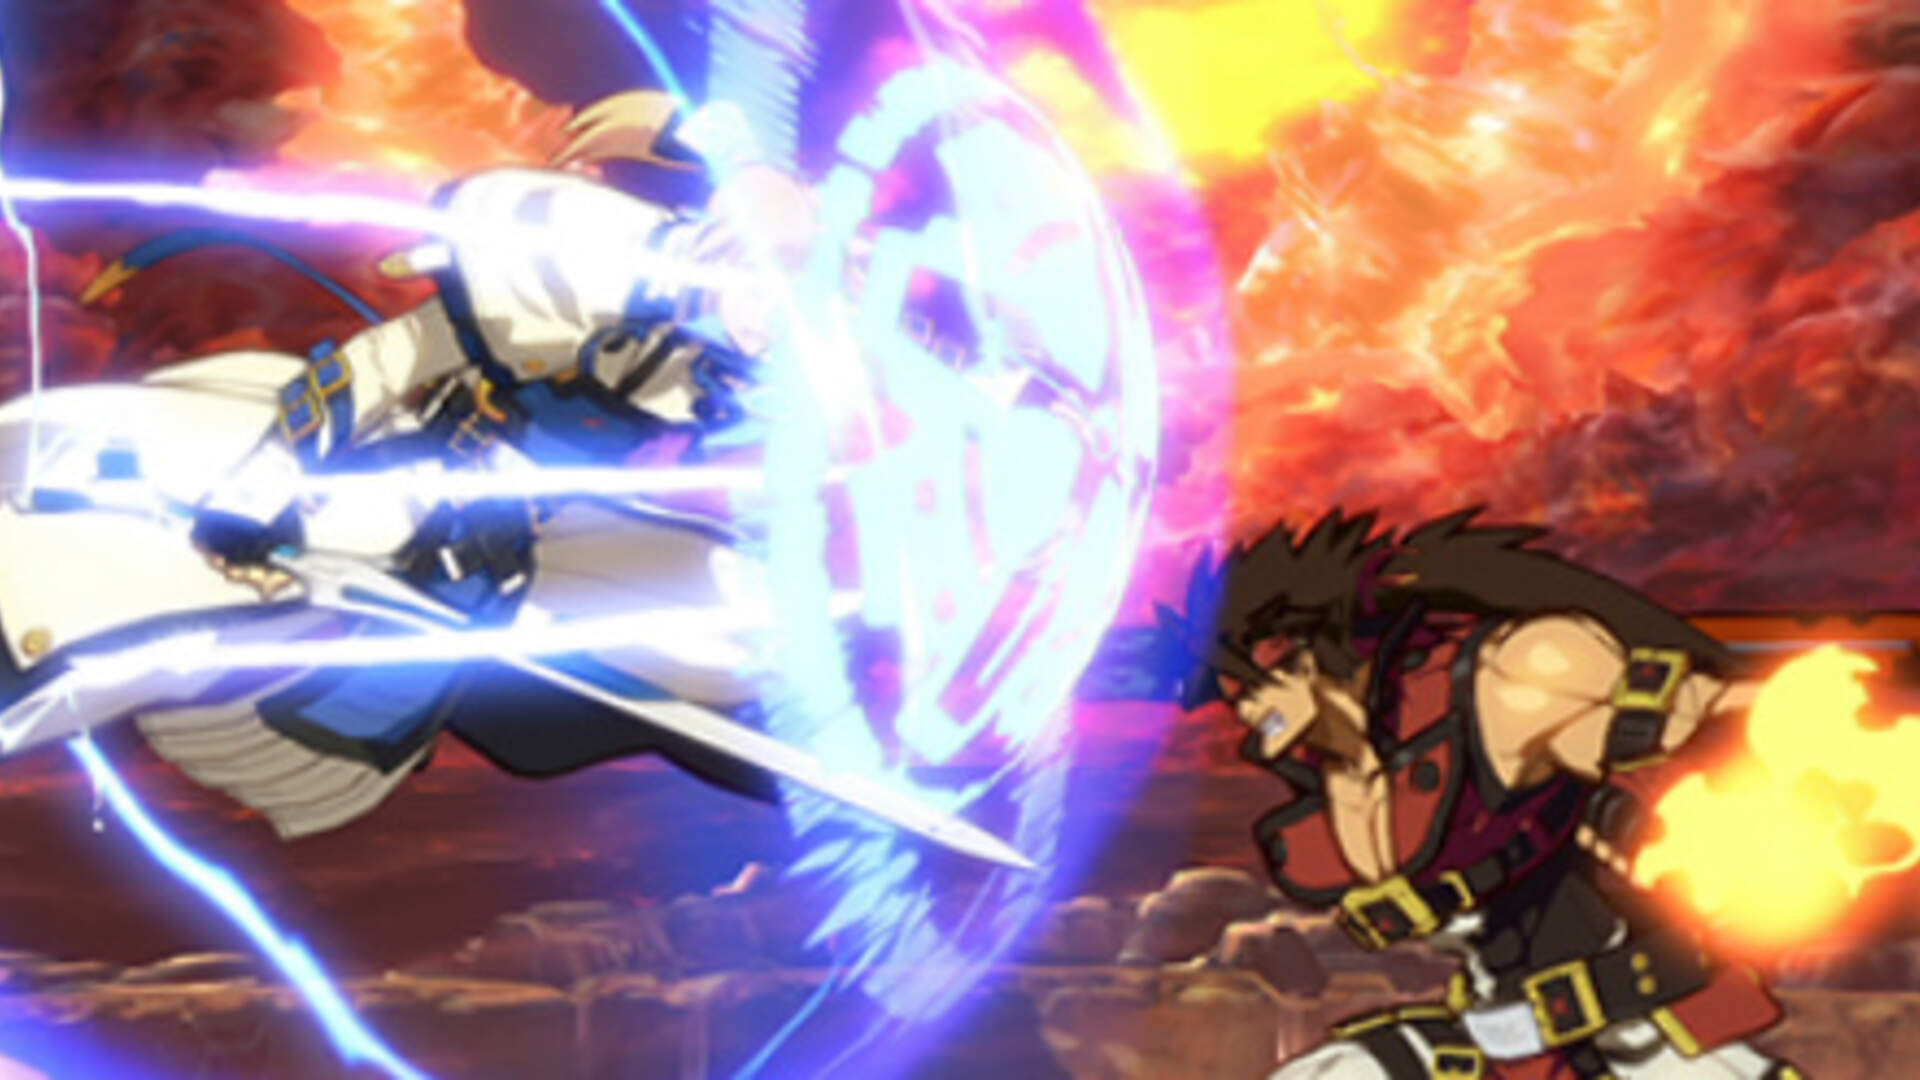 Guilty Gear Xrd -SIGN- PS4 Review: Let's Rock (Again)